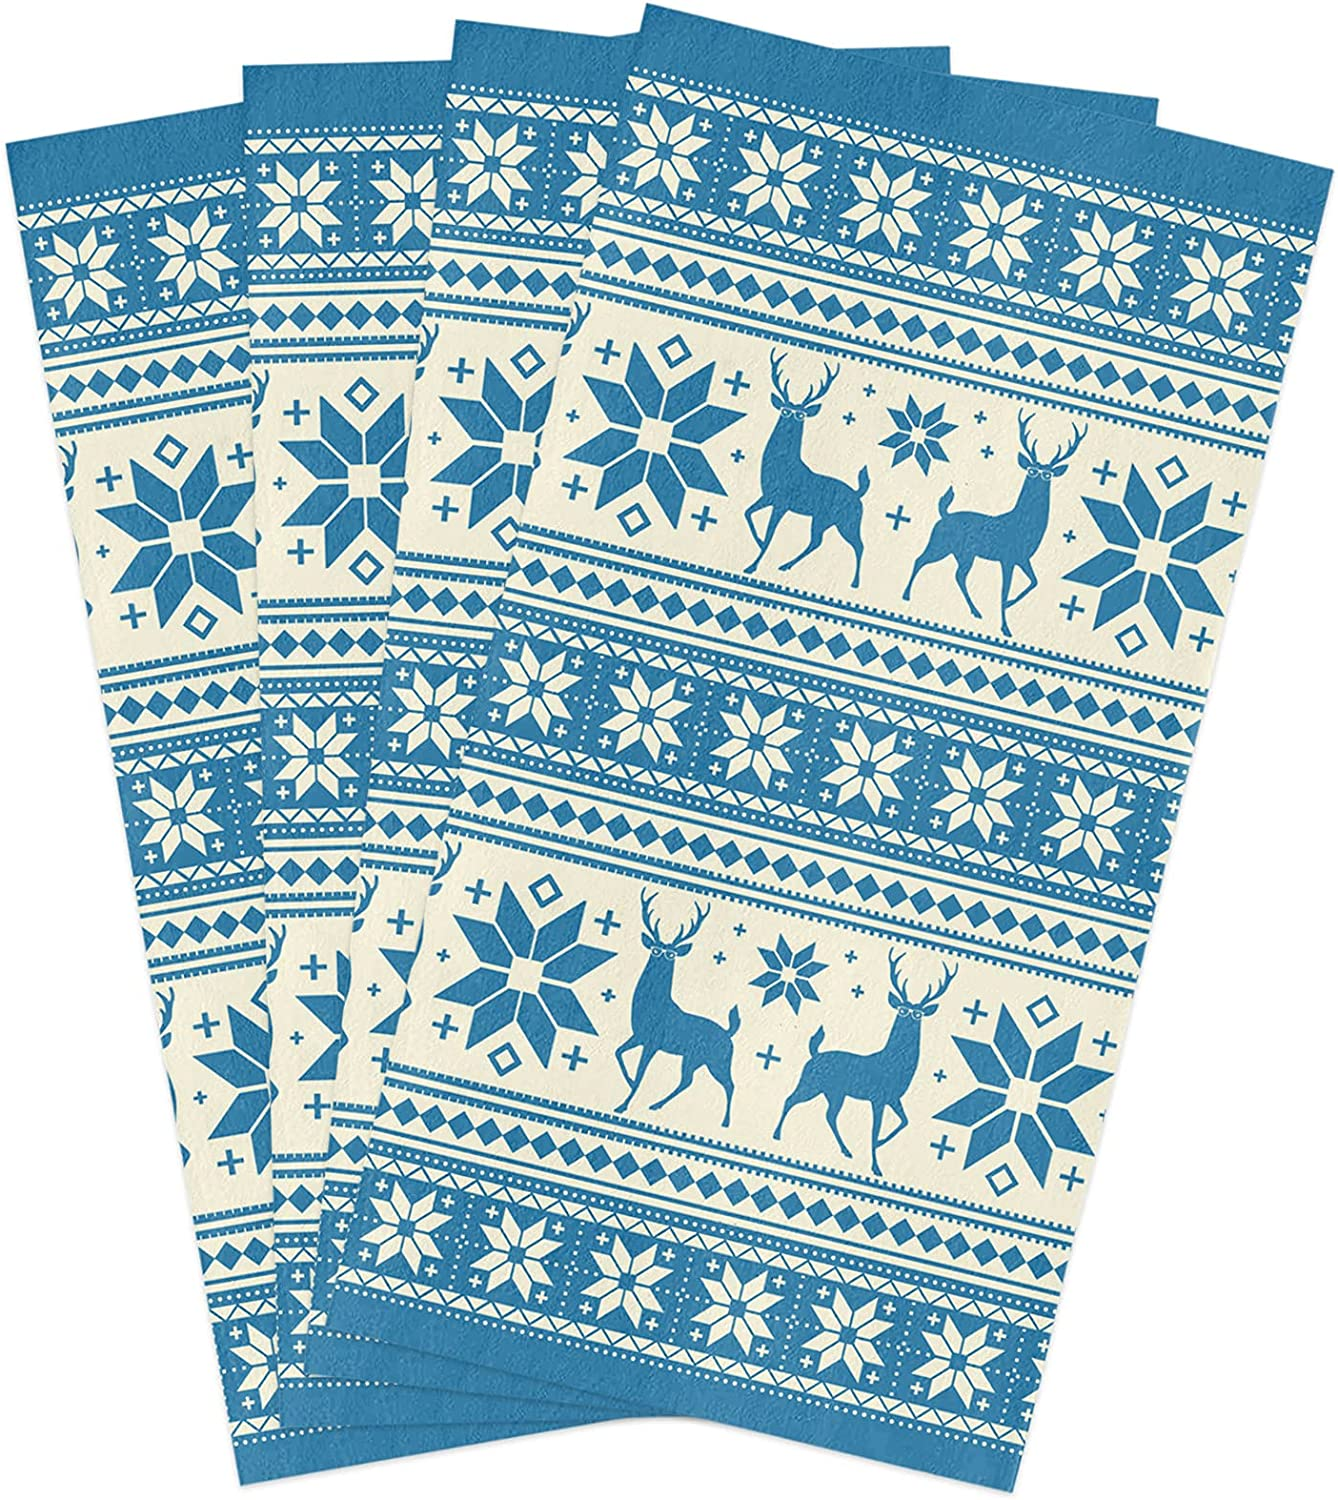 Microfiber Soft Kitchen Max 74% OFF Dish Towels Pack 4 Miami Mall Merry Re Christmas of